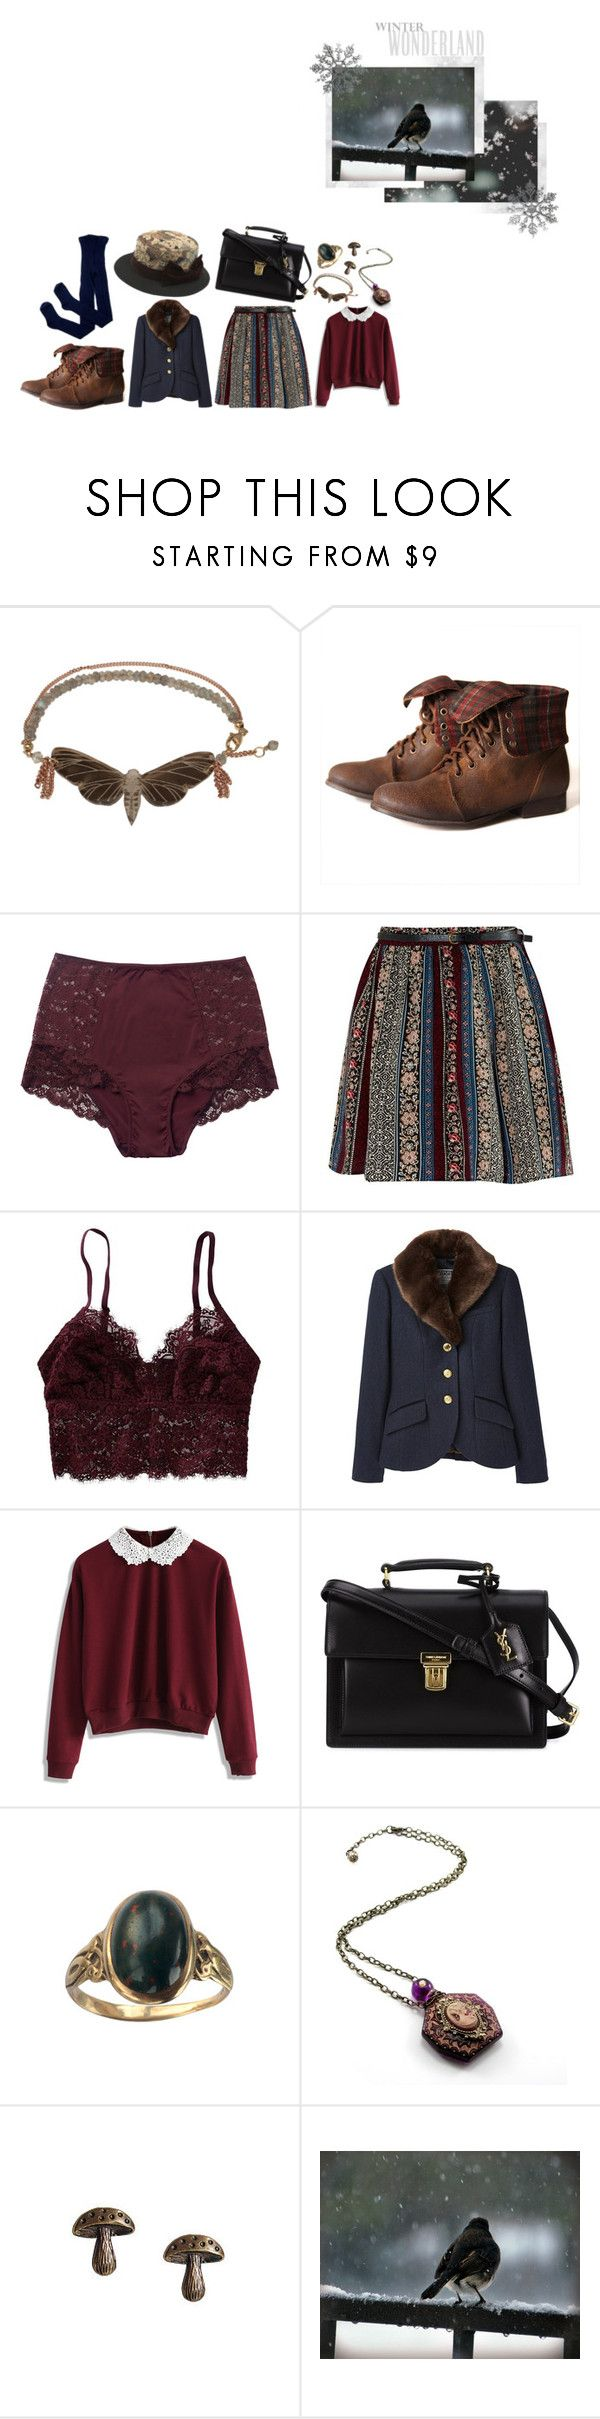 """""""31 Day Challenge - Day 19"""" by aurenfaie ❤ liked on Polyvore featuring Monki, Aerie, Joules, Chicwish and Yves Saint Laurent"""